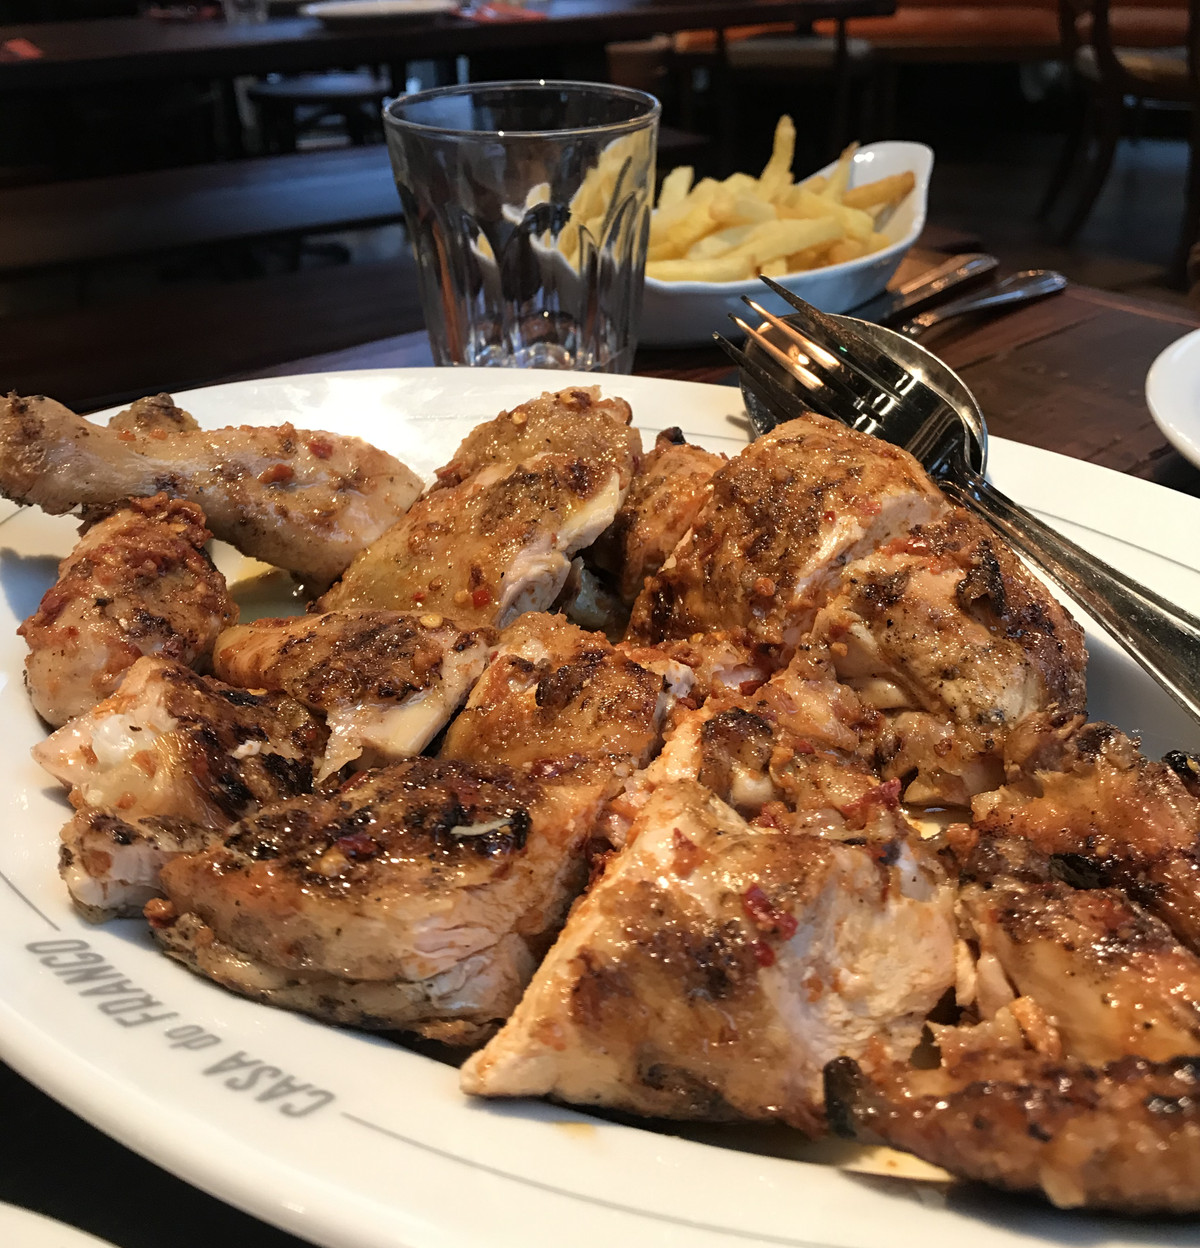 Chicken and chips and Casa do Frango in Shoreditch was one of the best things Eater writers ate in London this week